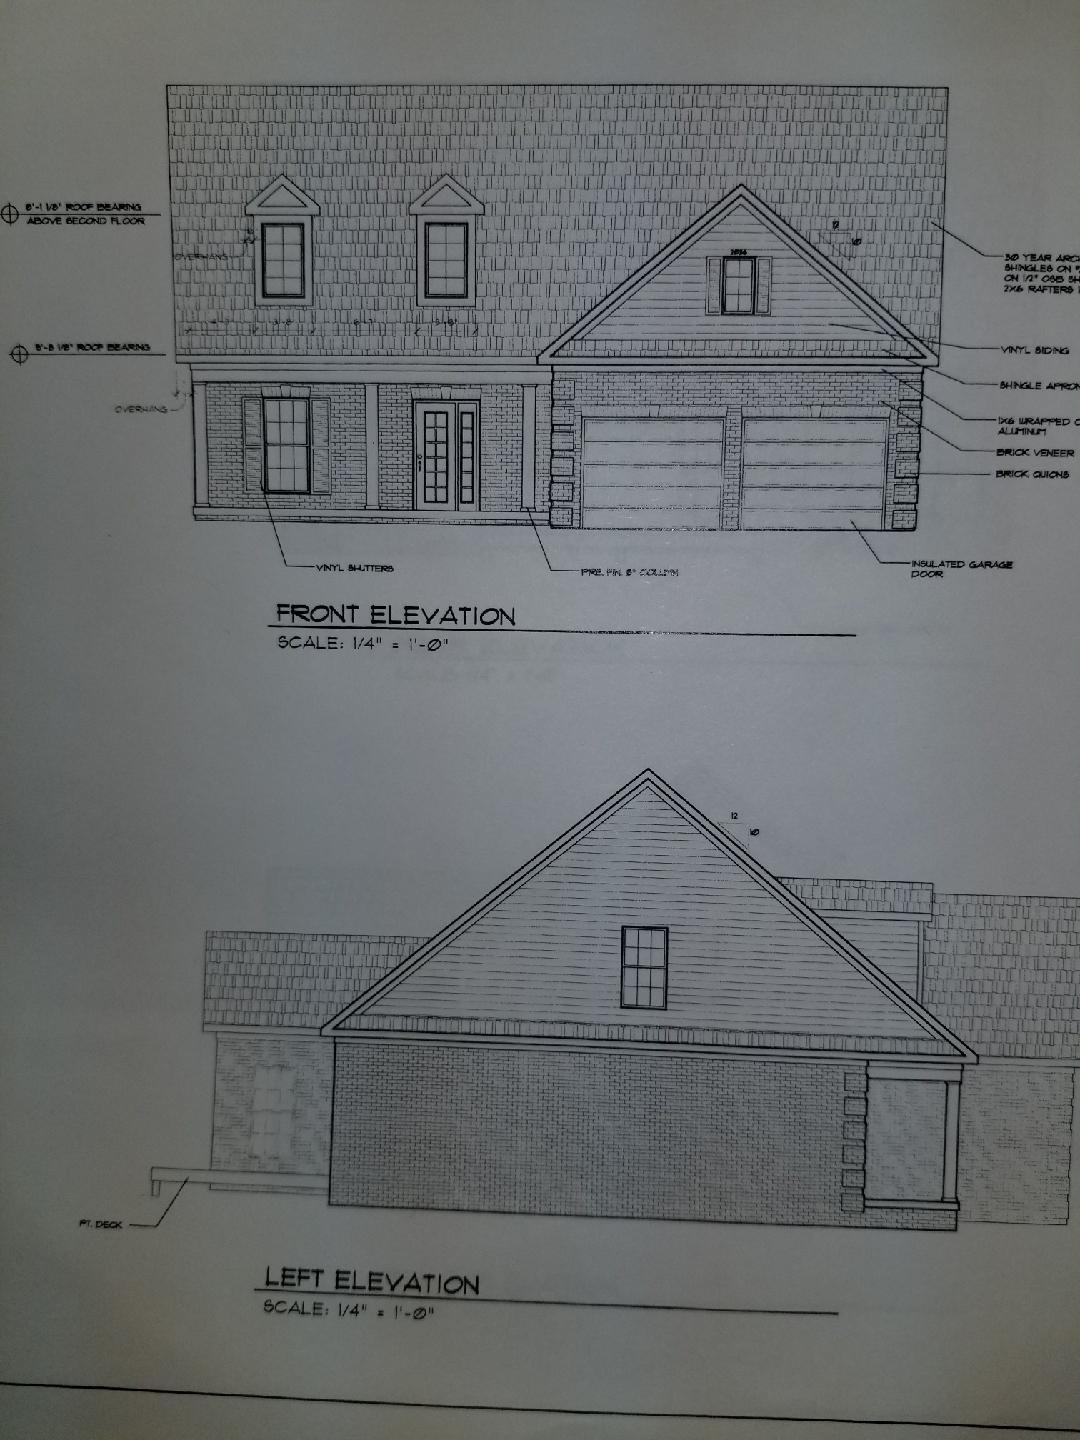 New%20construction%20in%20progress.%201.5%20story,%20three%20bedroom,%20two%20bath%20custom%20design%20home%20in%20Pine%20Hill%20Village%20Subdivision.%20Located%20just%20off%20of%20Leestown%20Rd%20(US%20421)%20on%20east%20side%20of%20Frankfort%20allowign%20for%20ease%20of%20access%20to%20Lexington%20and%20Downtown%20Frankfort.%20Still%20time%20to%20pick%20out%20your%20desired%20finishes.